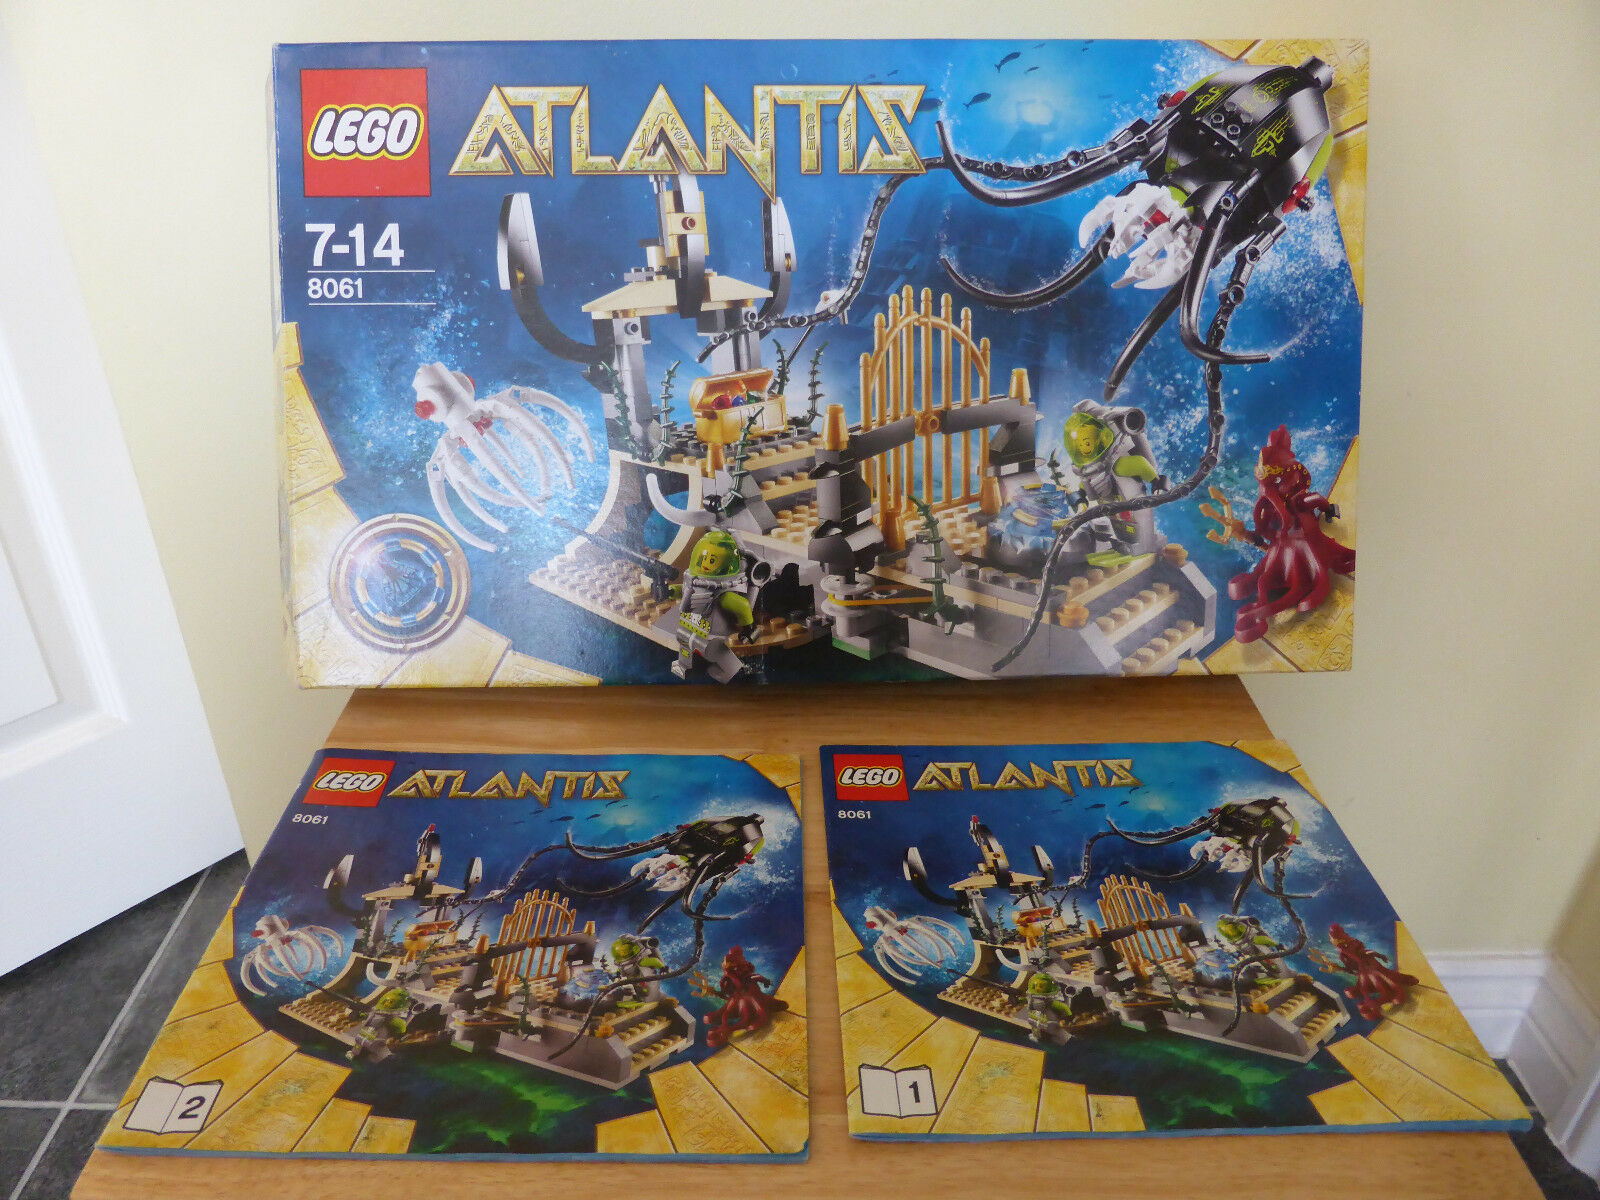 Lego Atlantis 8061 Gateway Of The Squid with Original Box and Instructions